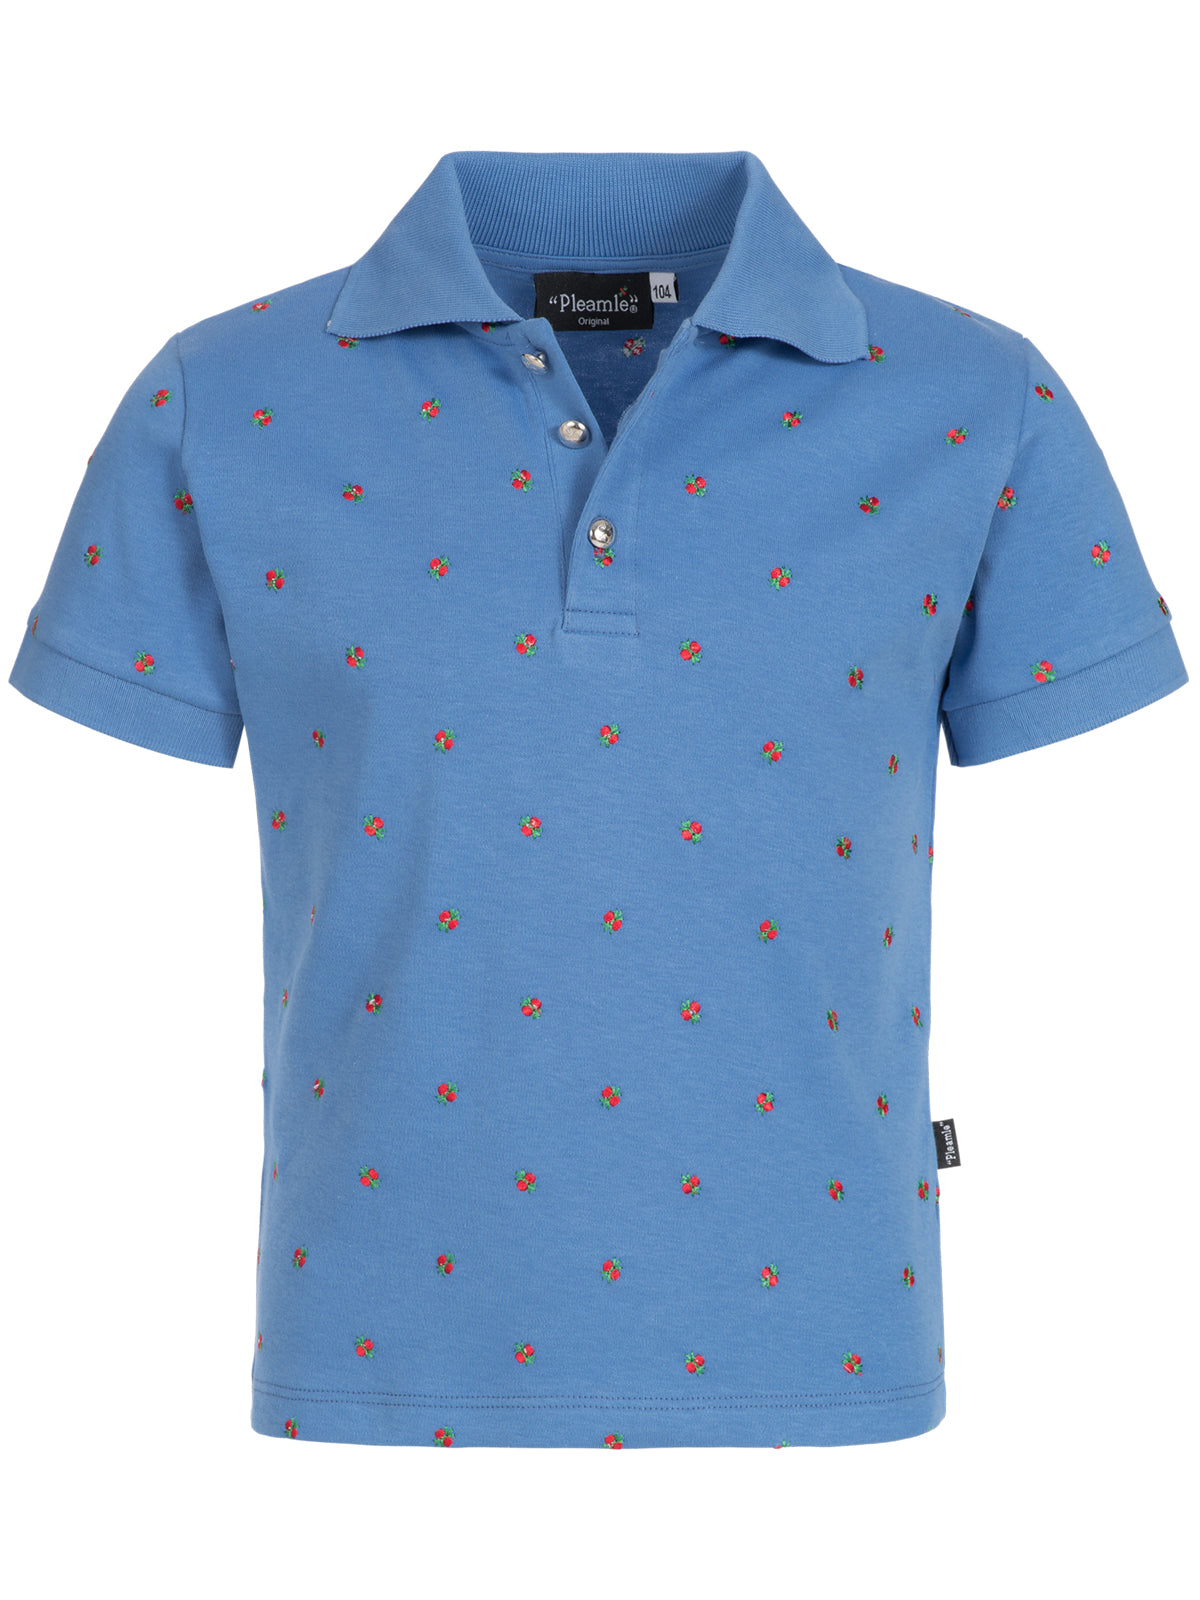 Pleamle Kinder Polo Kurzarm Original hellblau